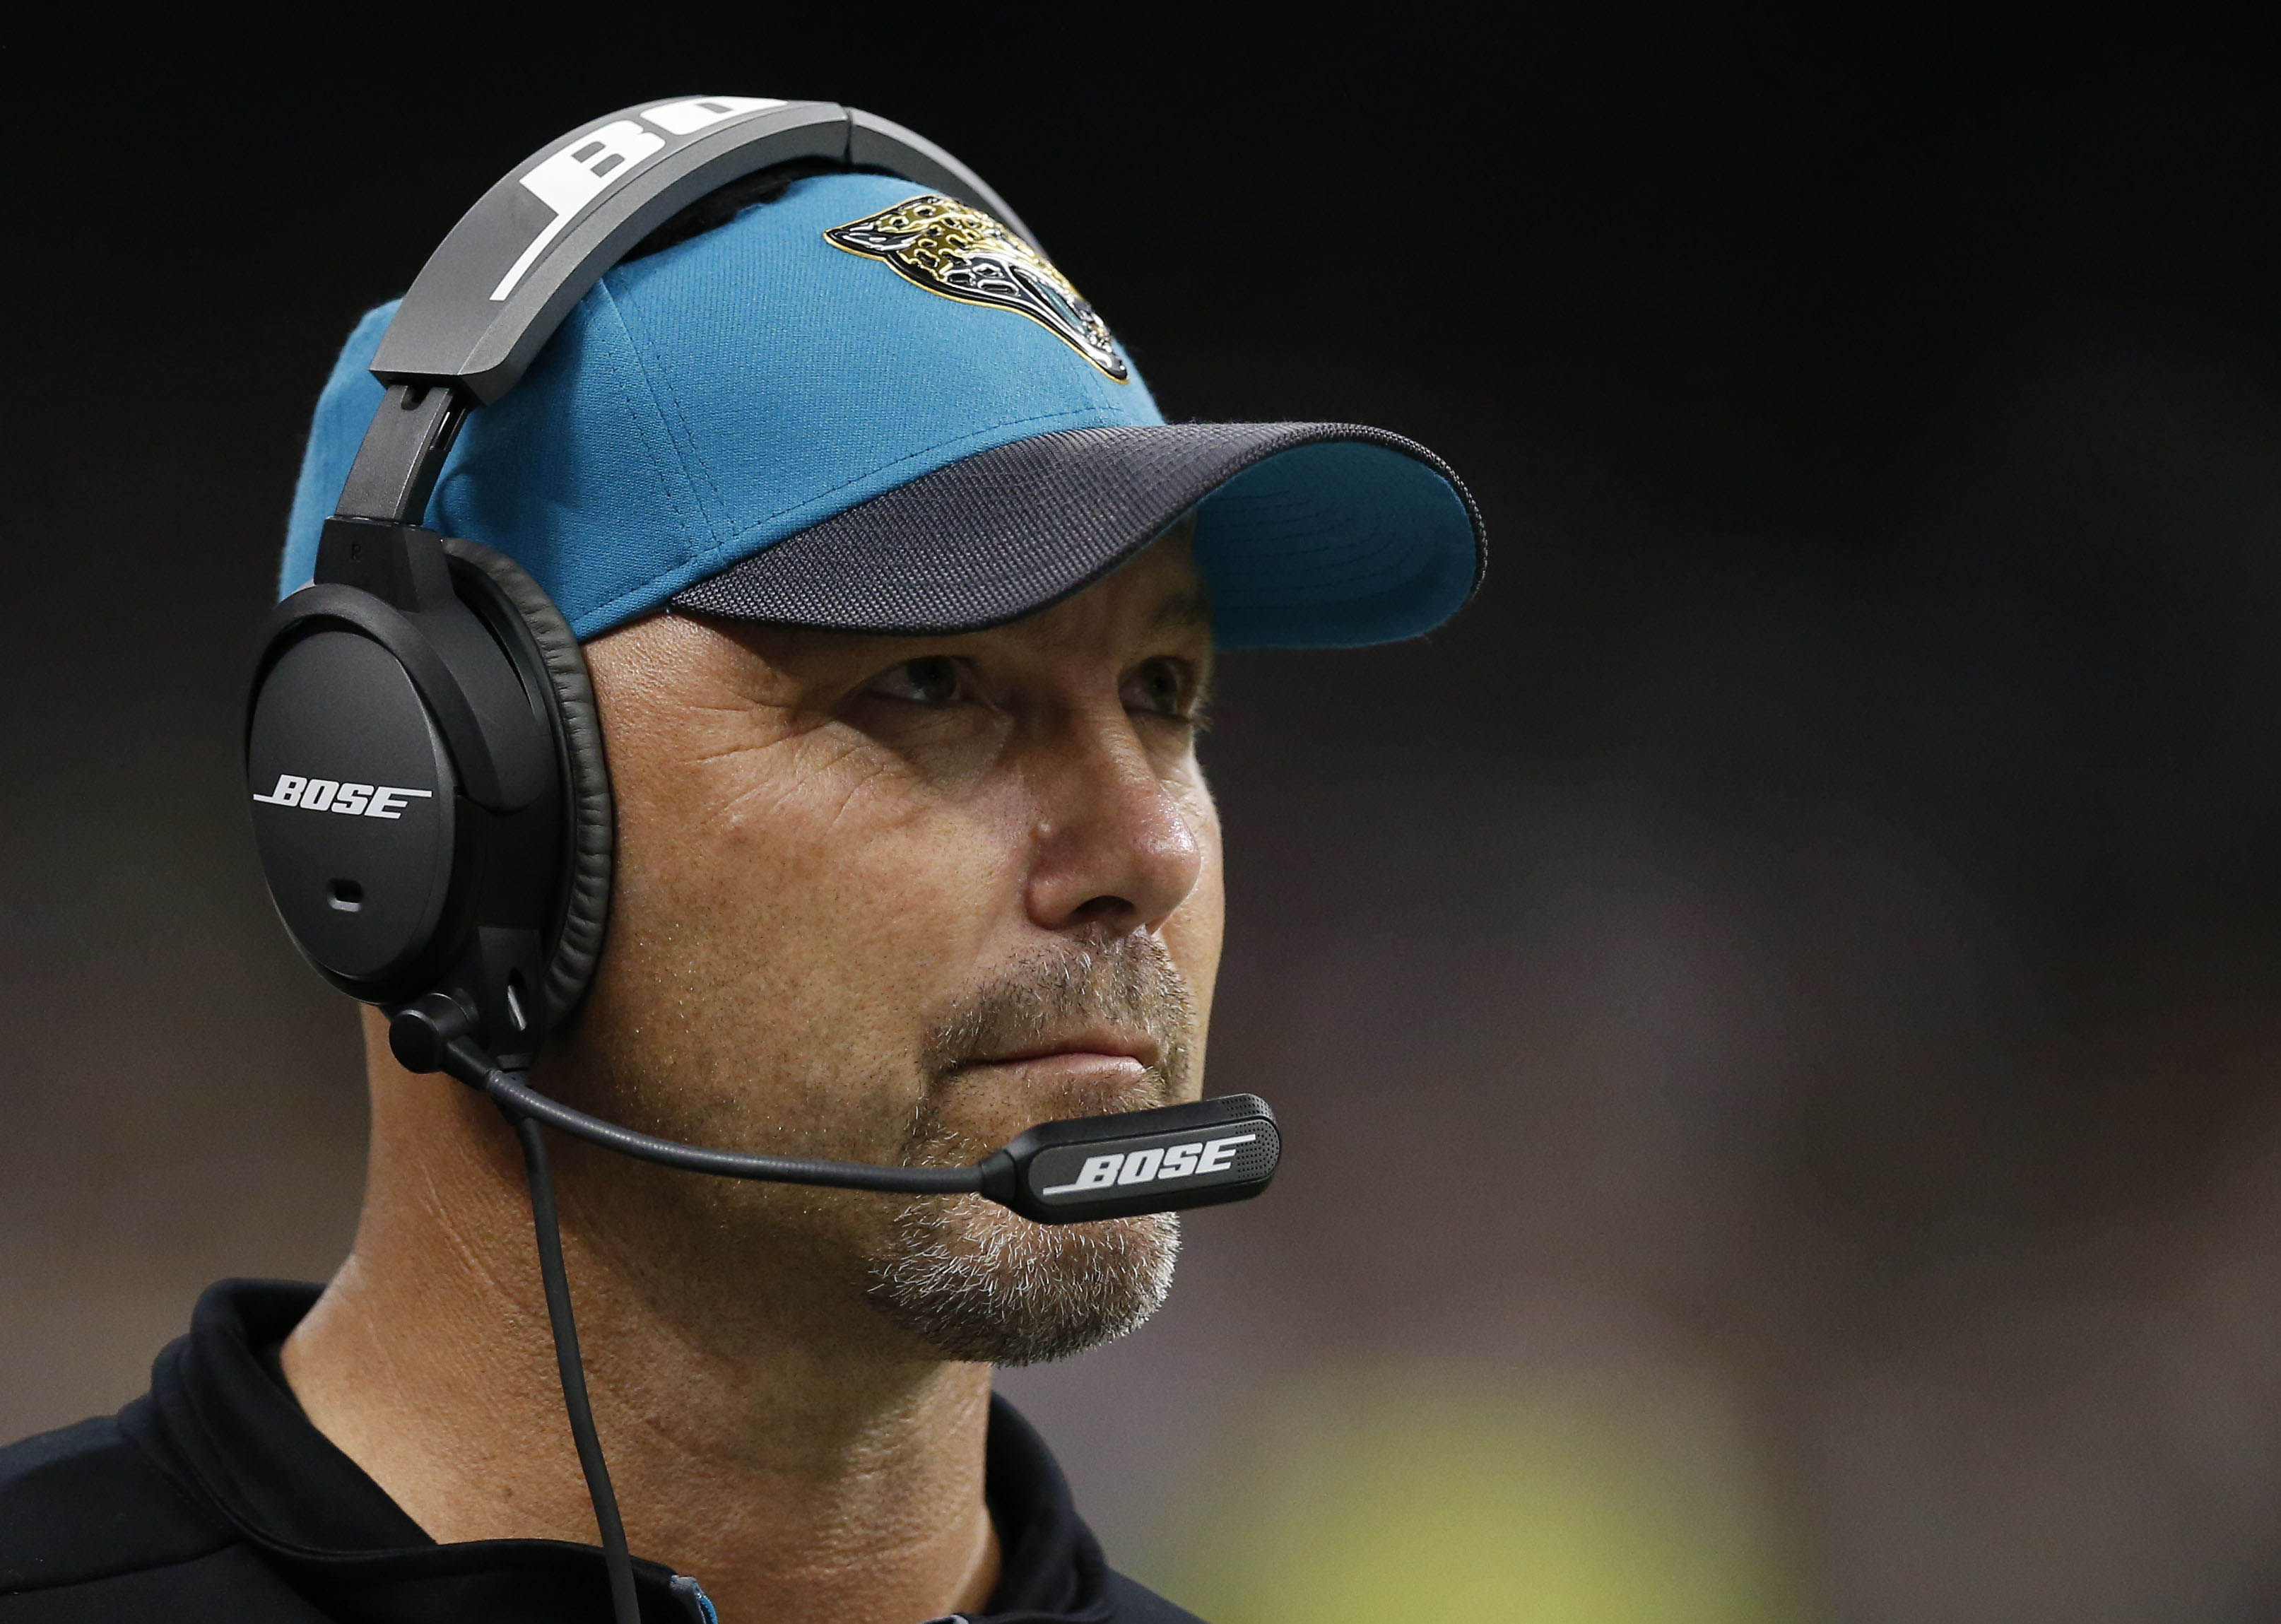 FILE - In this Sunday, Dec. 27, 2015 file photo, Jacksonville Jaguars head coach Gus Bradley works the sideline in the second half of an NFL football game against the New Orleans Saints in New Orleans. Jacksonville Jaguars coach Gus Bradley will return in